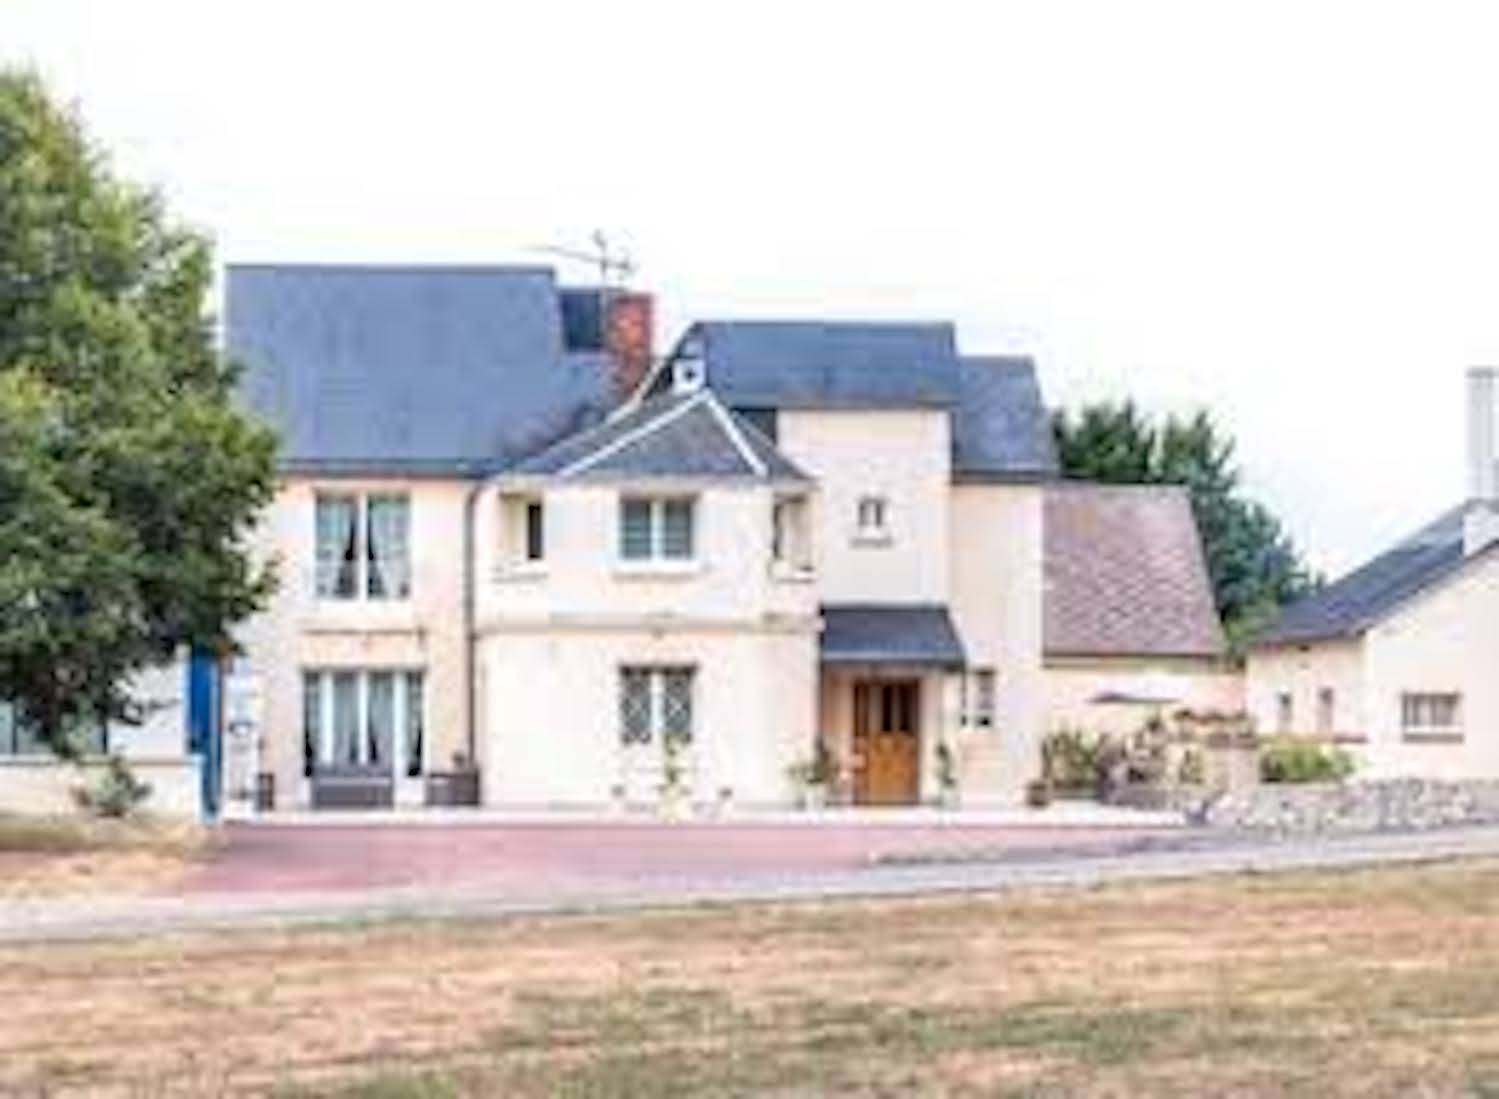 A house with trees in the background at Gite Les Vedieres.